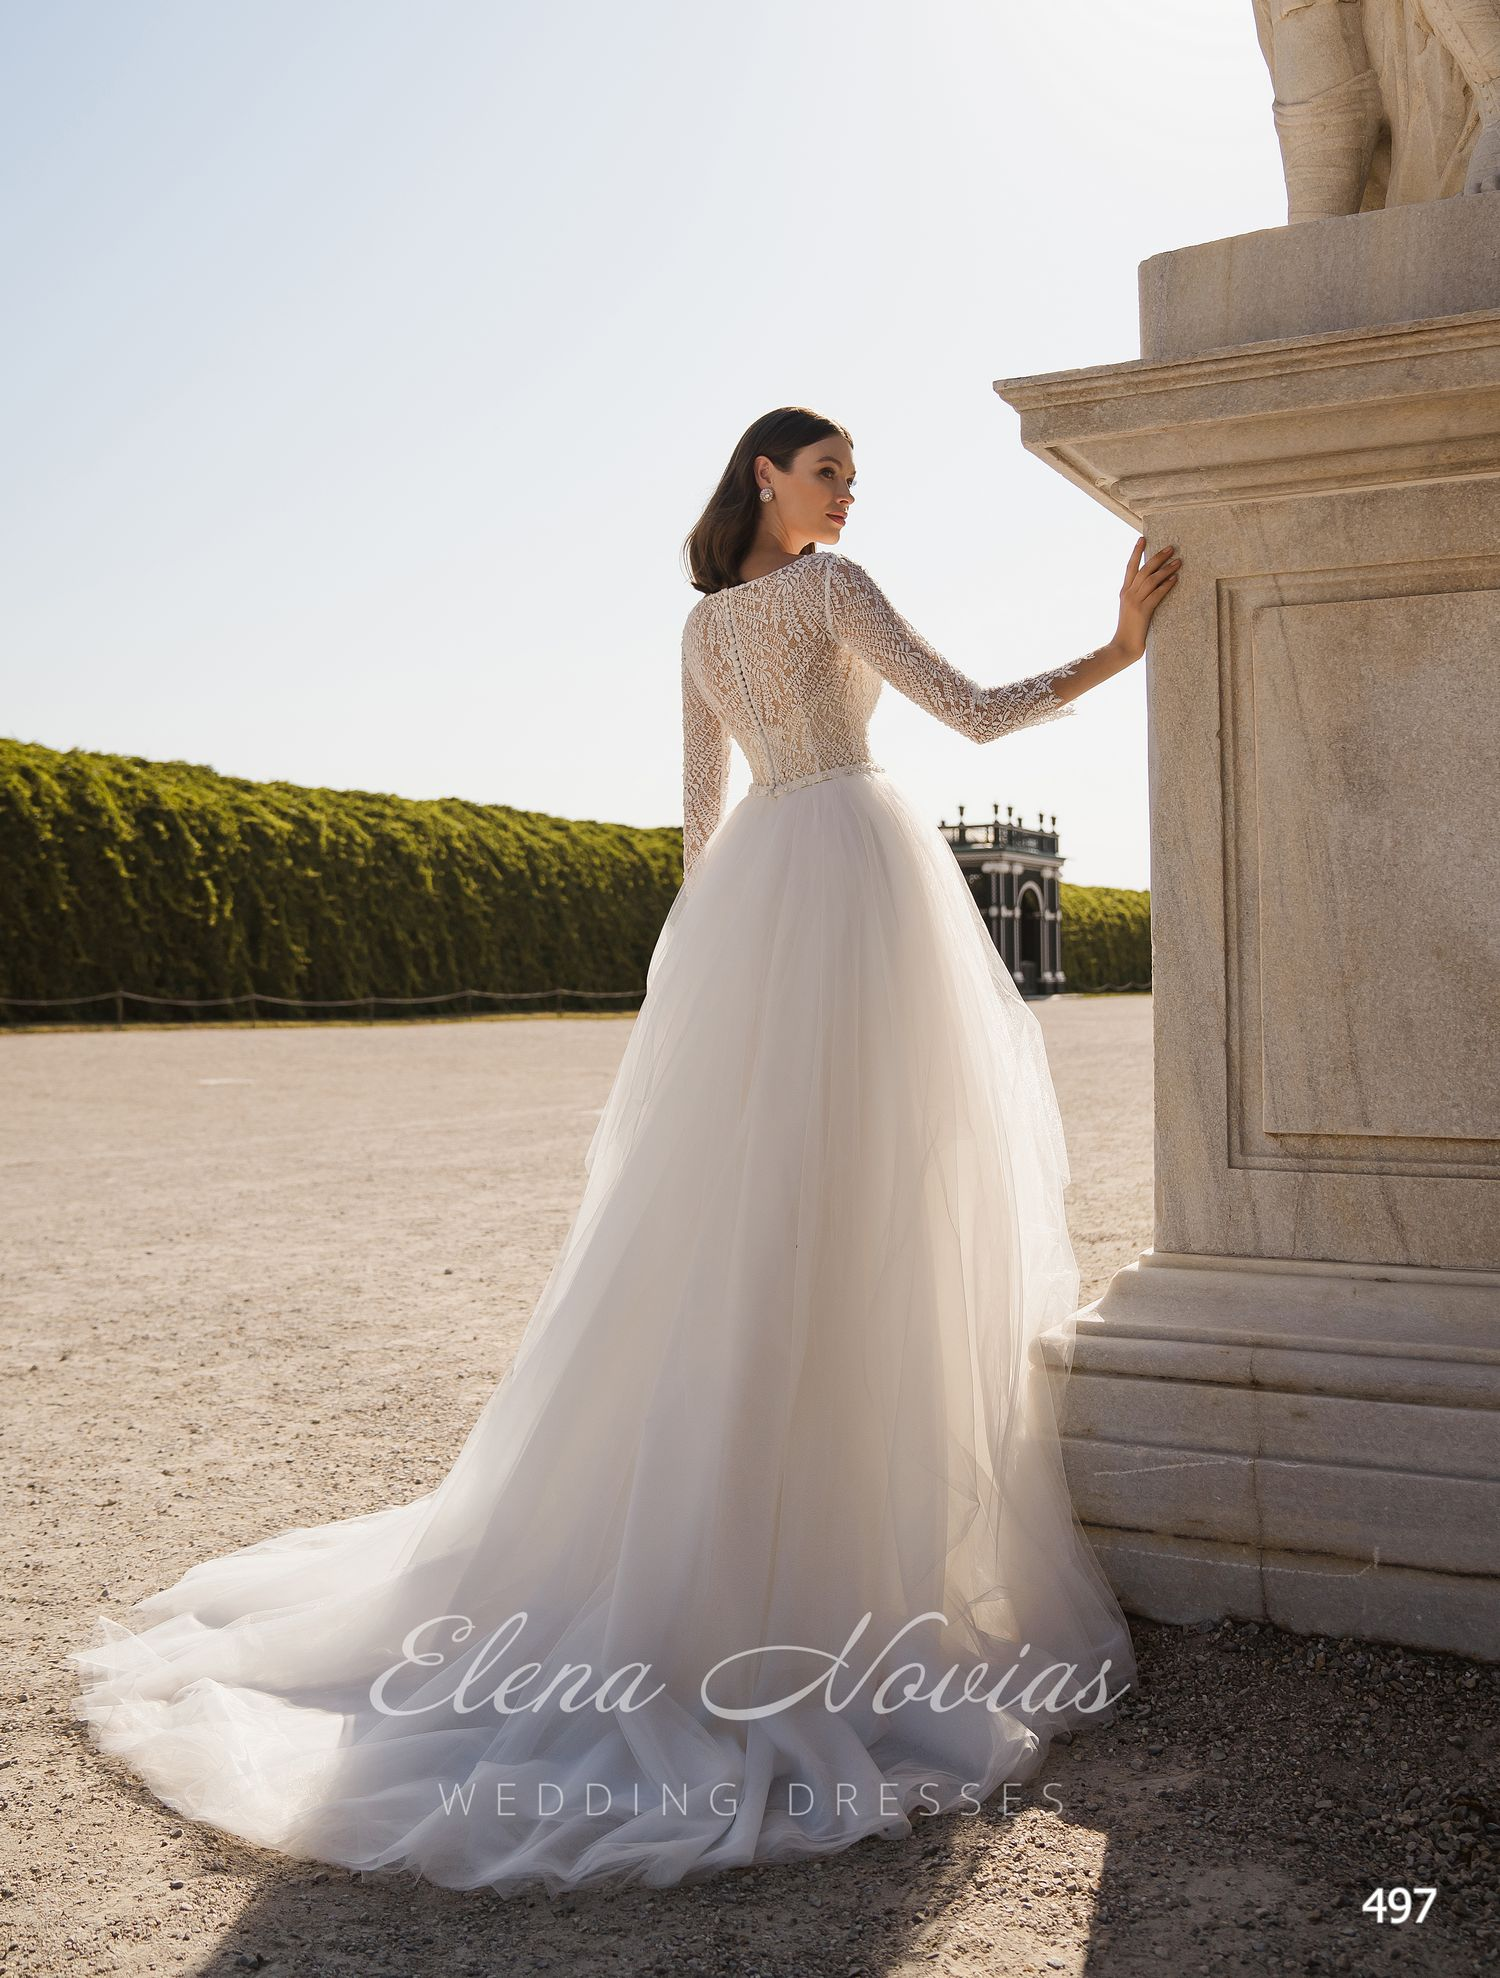 Wedding dresses 497 2